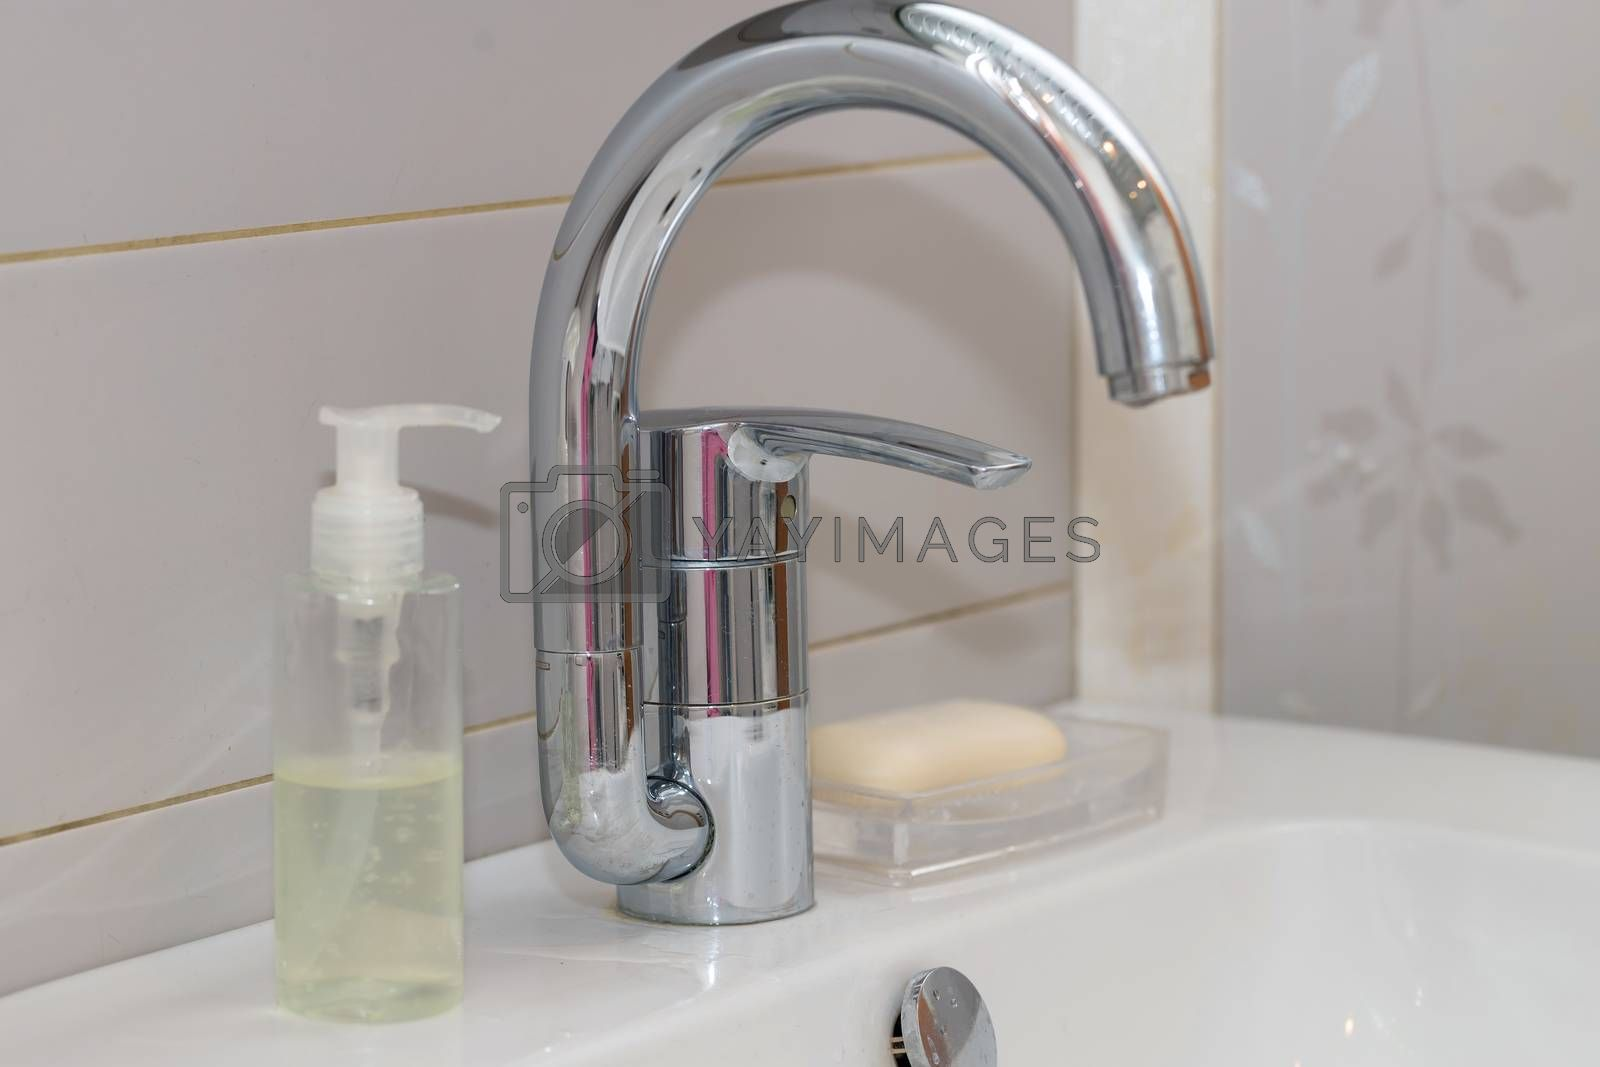 Modern hand wash basin. Solid tabletop surface and gray tile wall. Dispensable soap next to water tap on bathroom sink